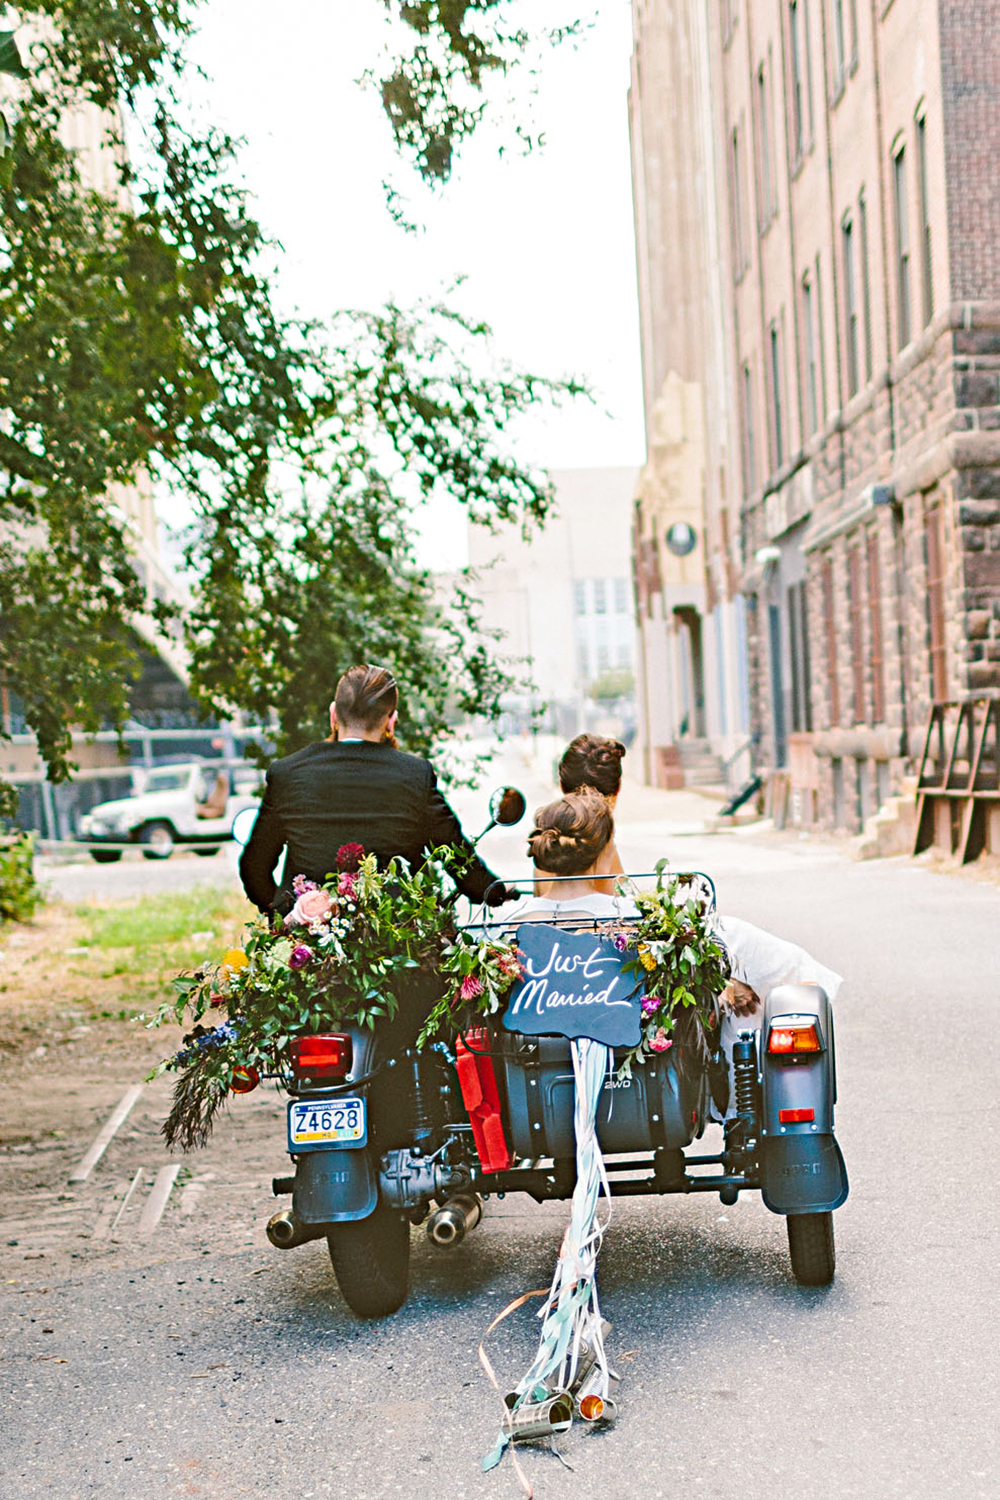 The newlyweds' Ural motorcycle—which inspired their logo—was decked out for the big day. They snuggled in the sidecar while a friend drove to the venue.